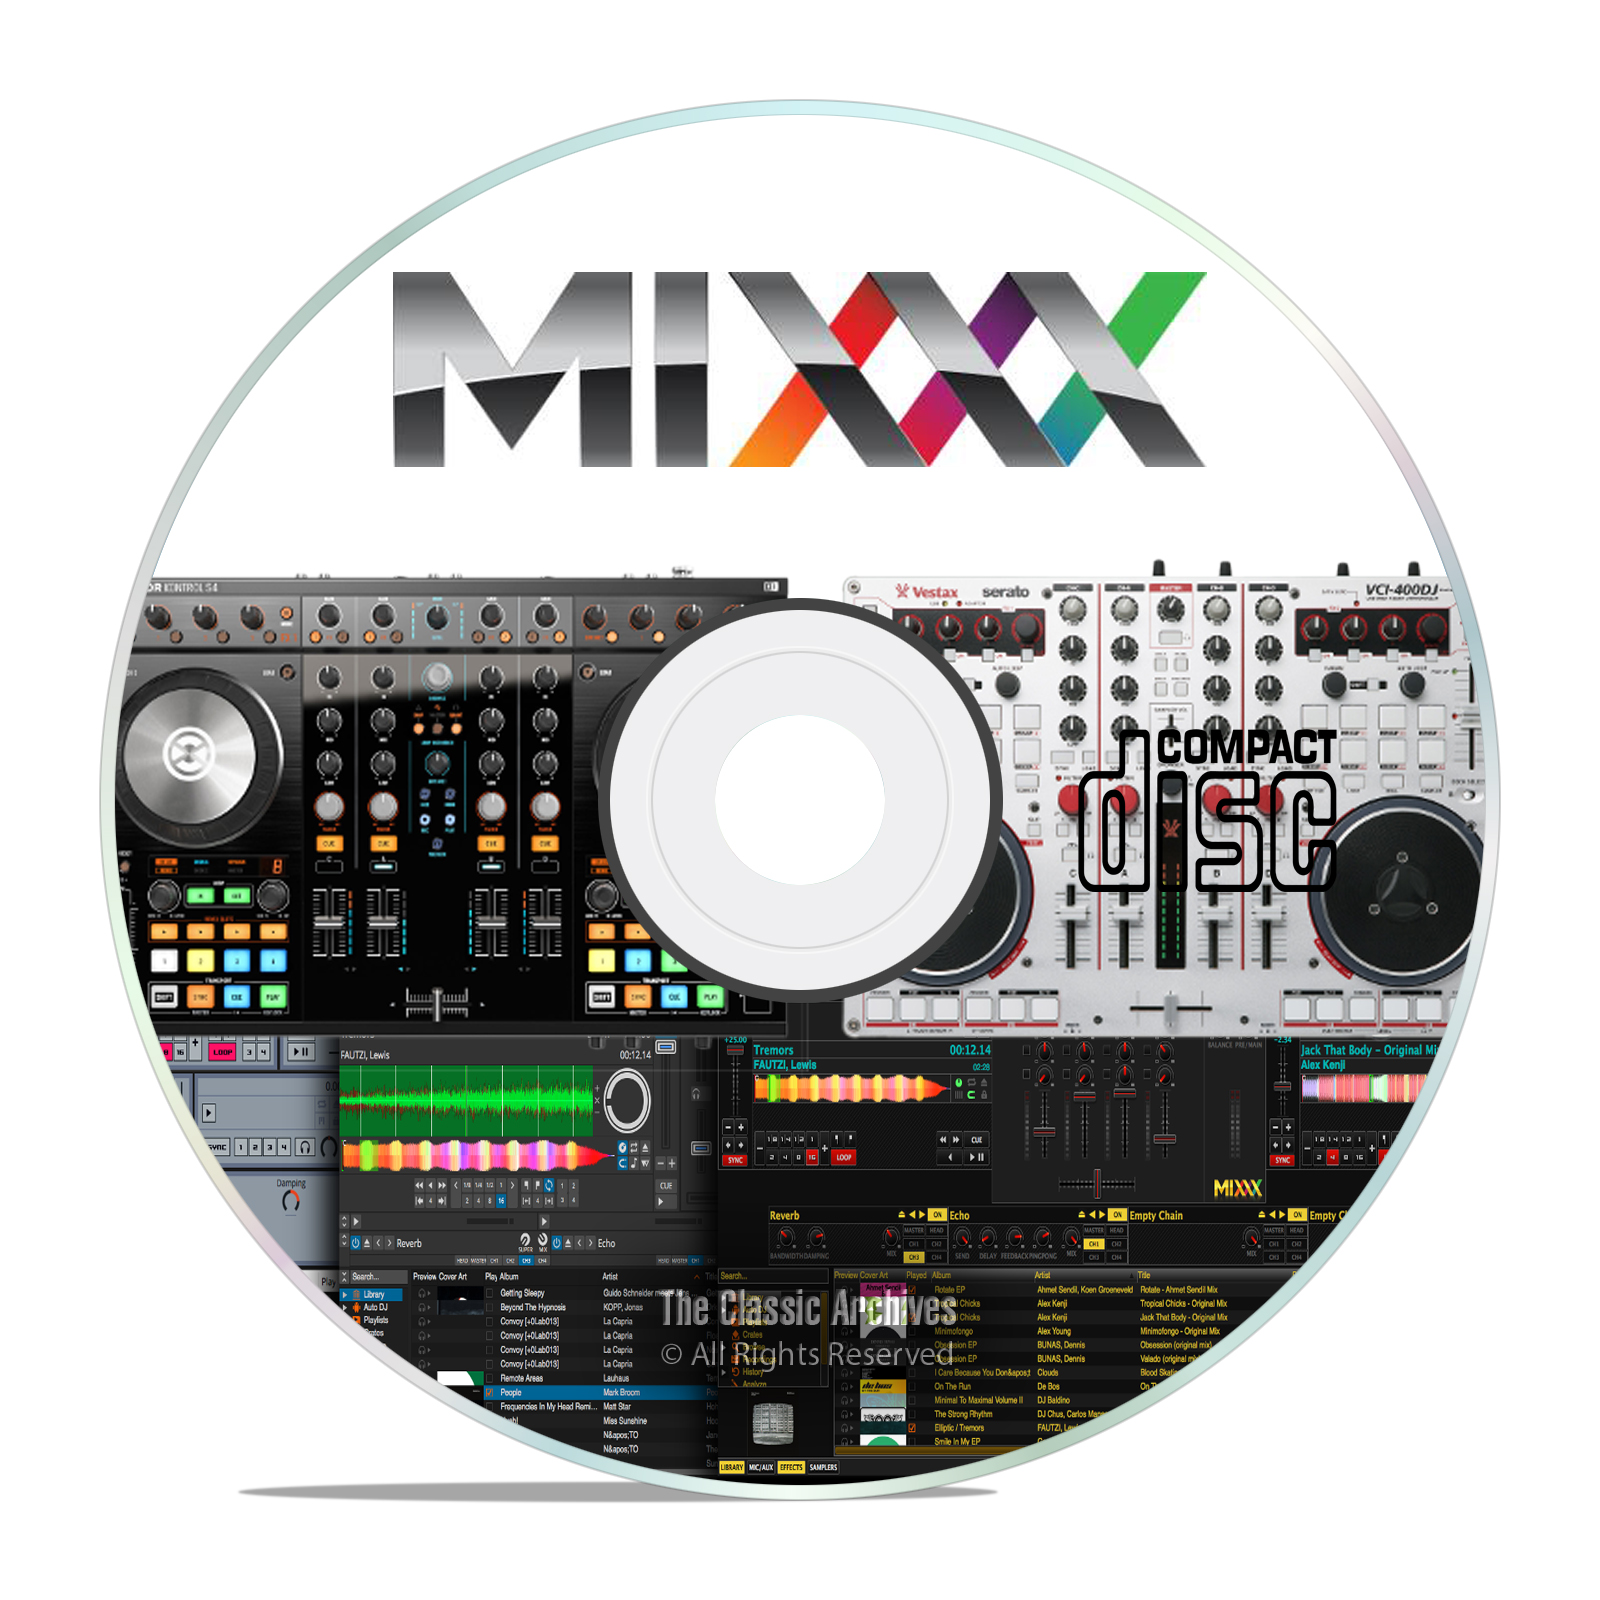 Professional DJ Music Mixing Software, Mixxx, MIDI Controller Support CD